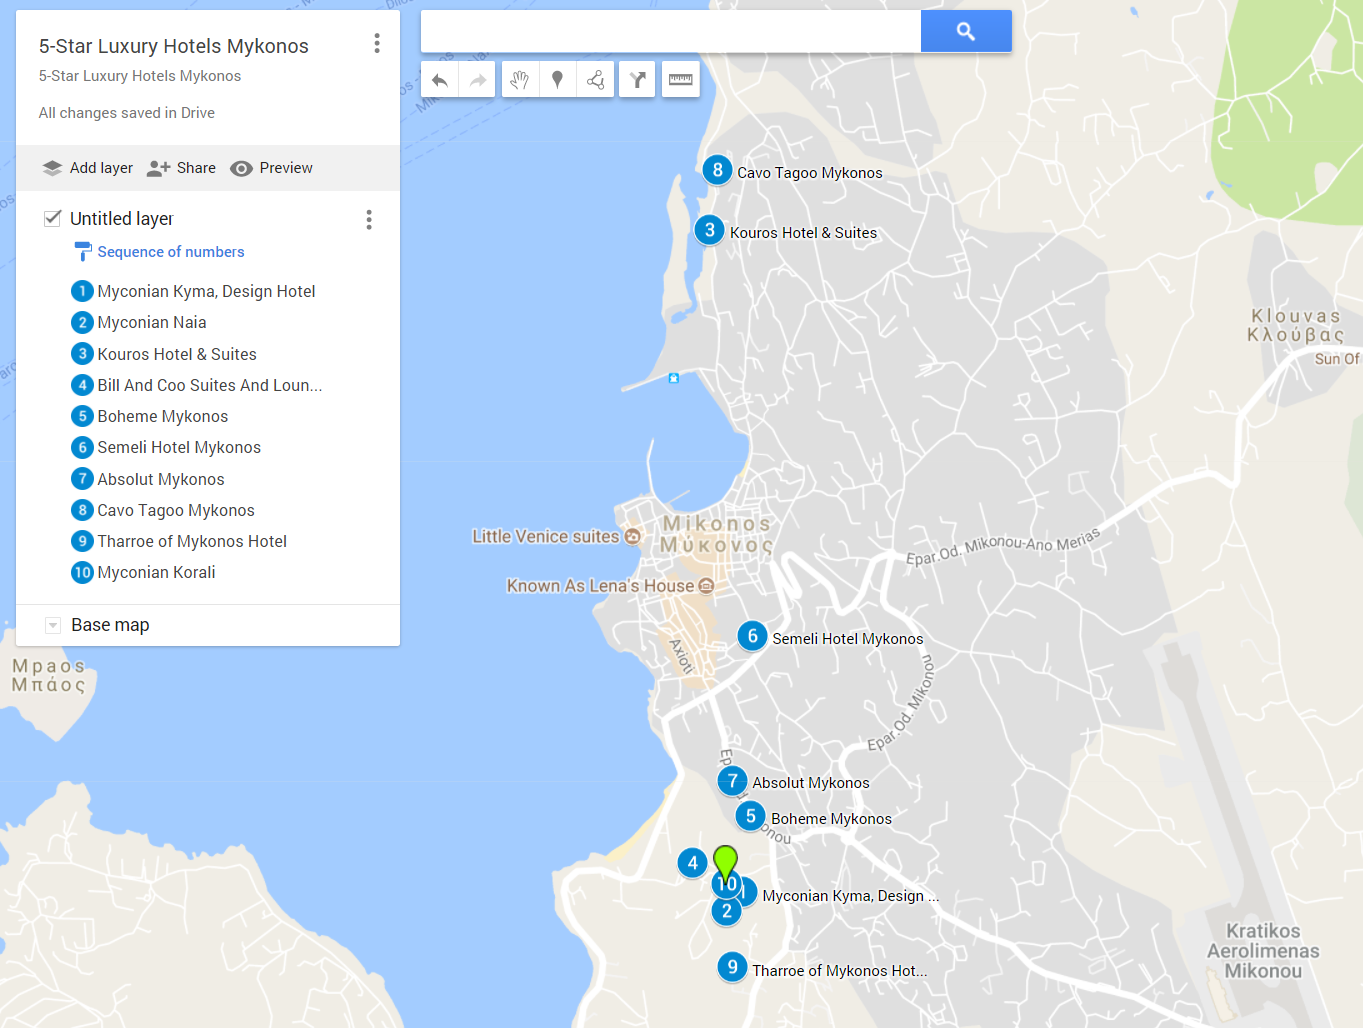 A google map with the best 5-star luxury hotels in Mykonos Town